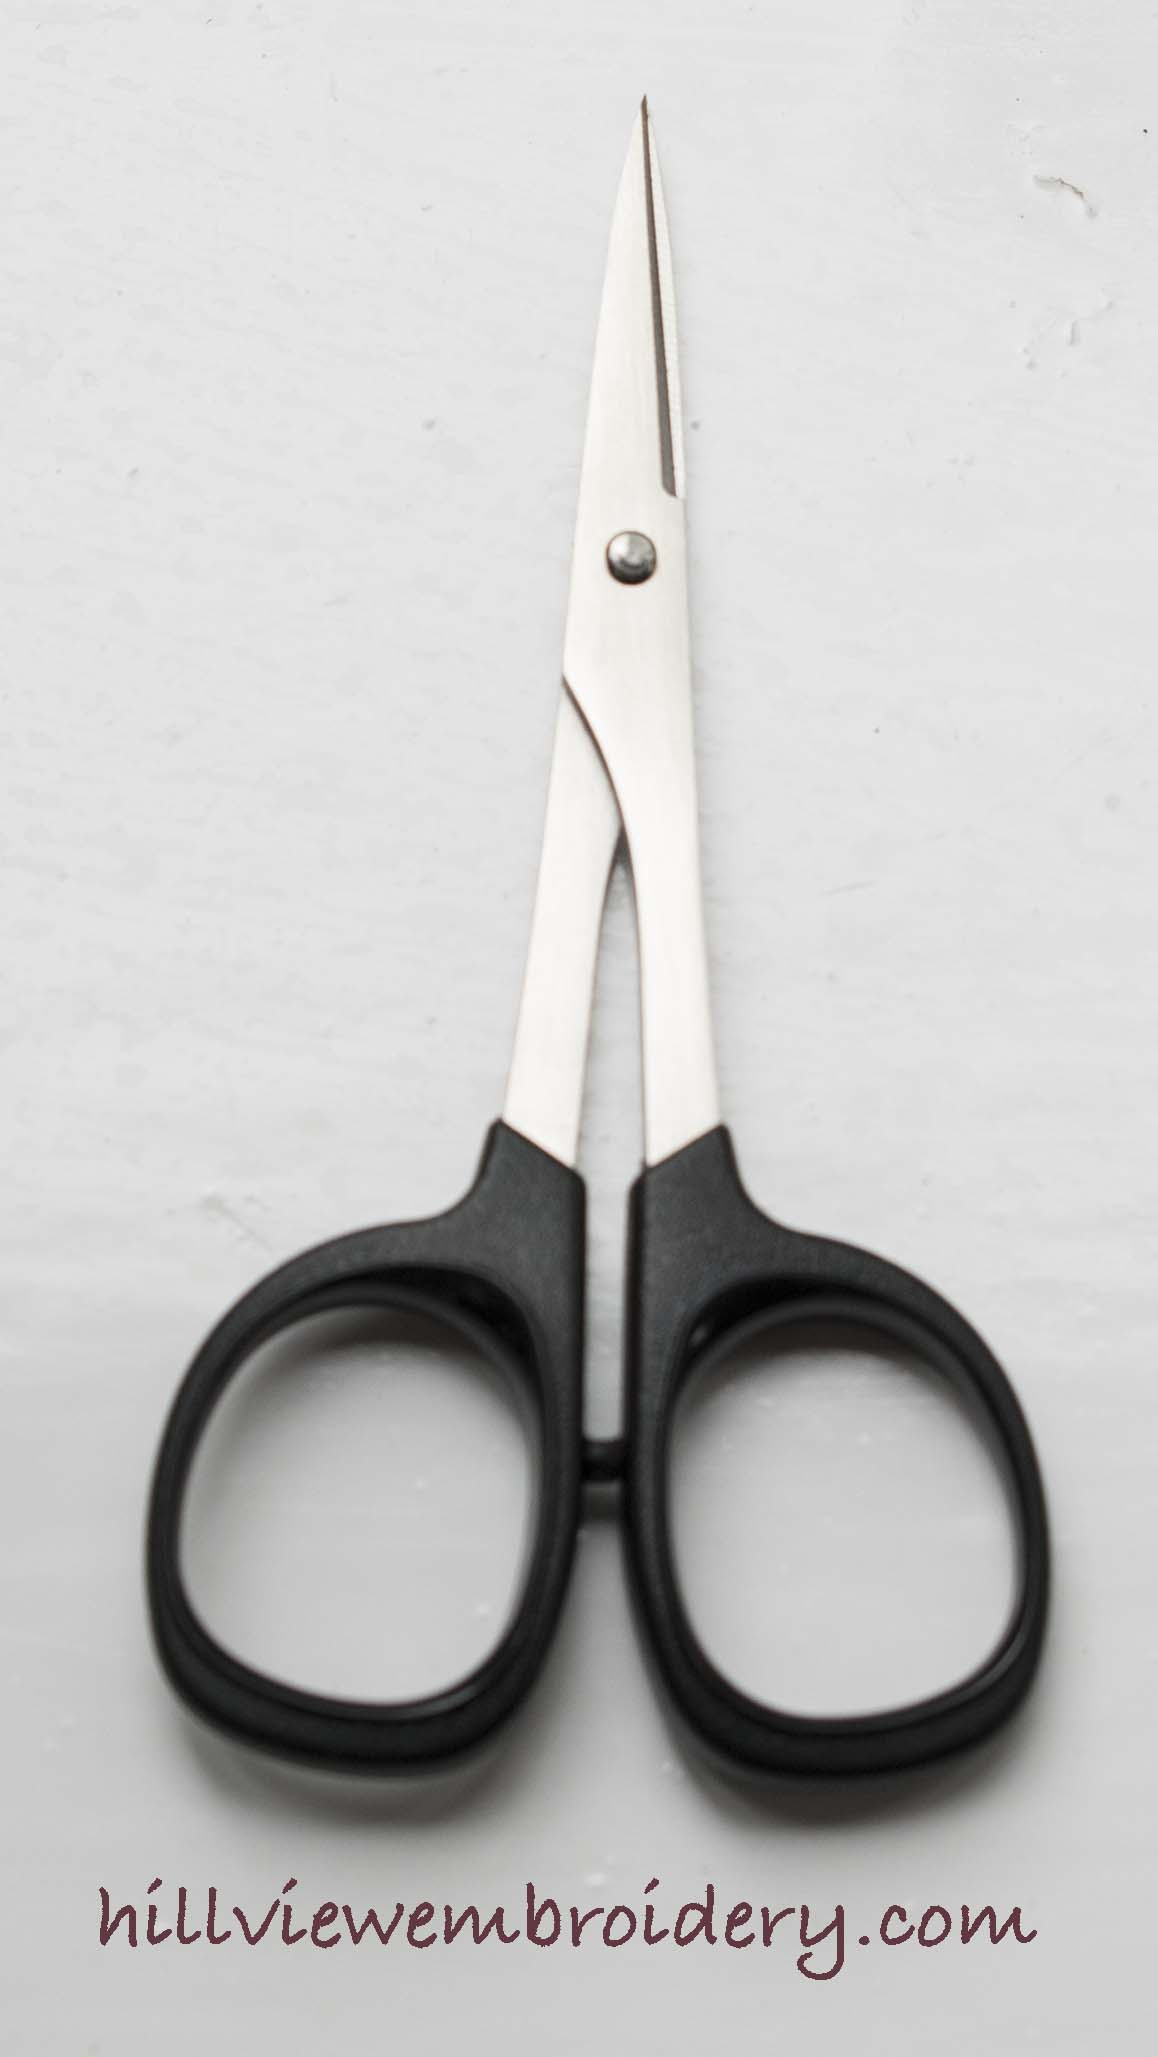 The fine and sharp embroidery scissors by Kai